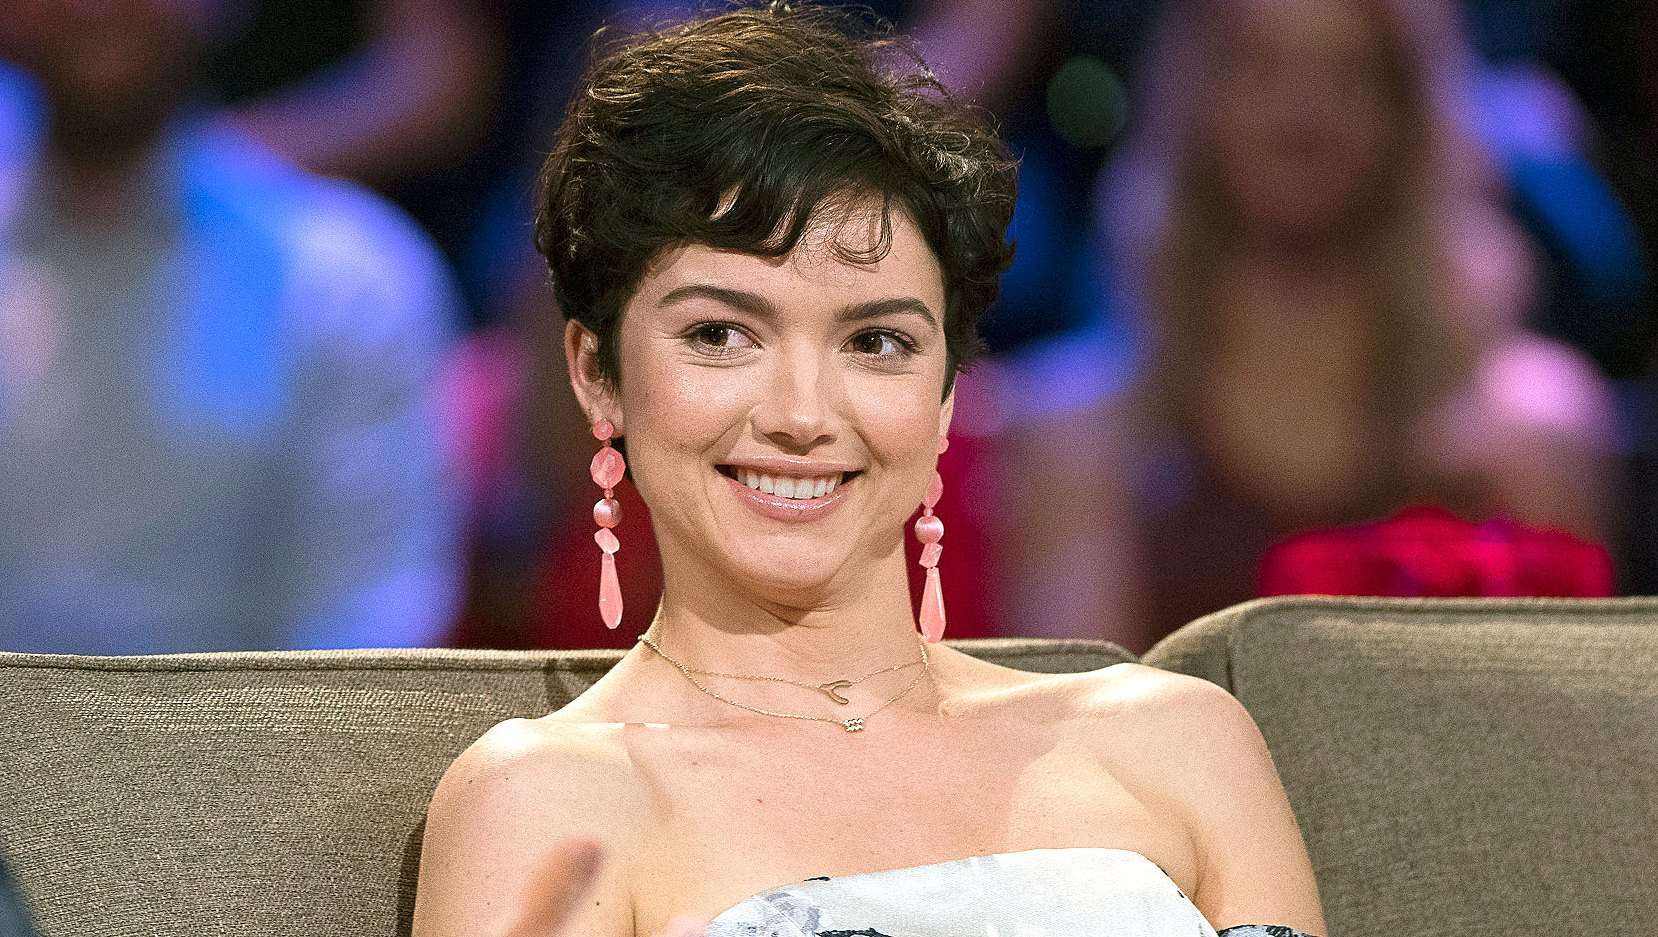 Bachelor's Bekah Martinez Reveals Baby Daughter's Name